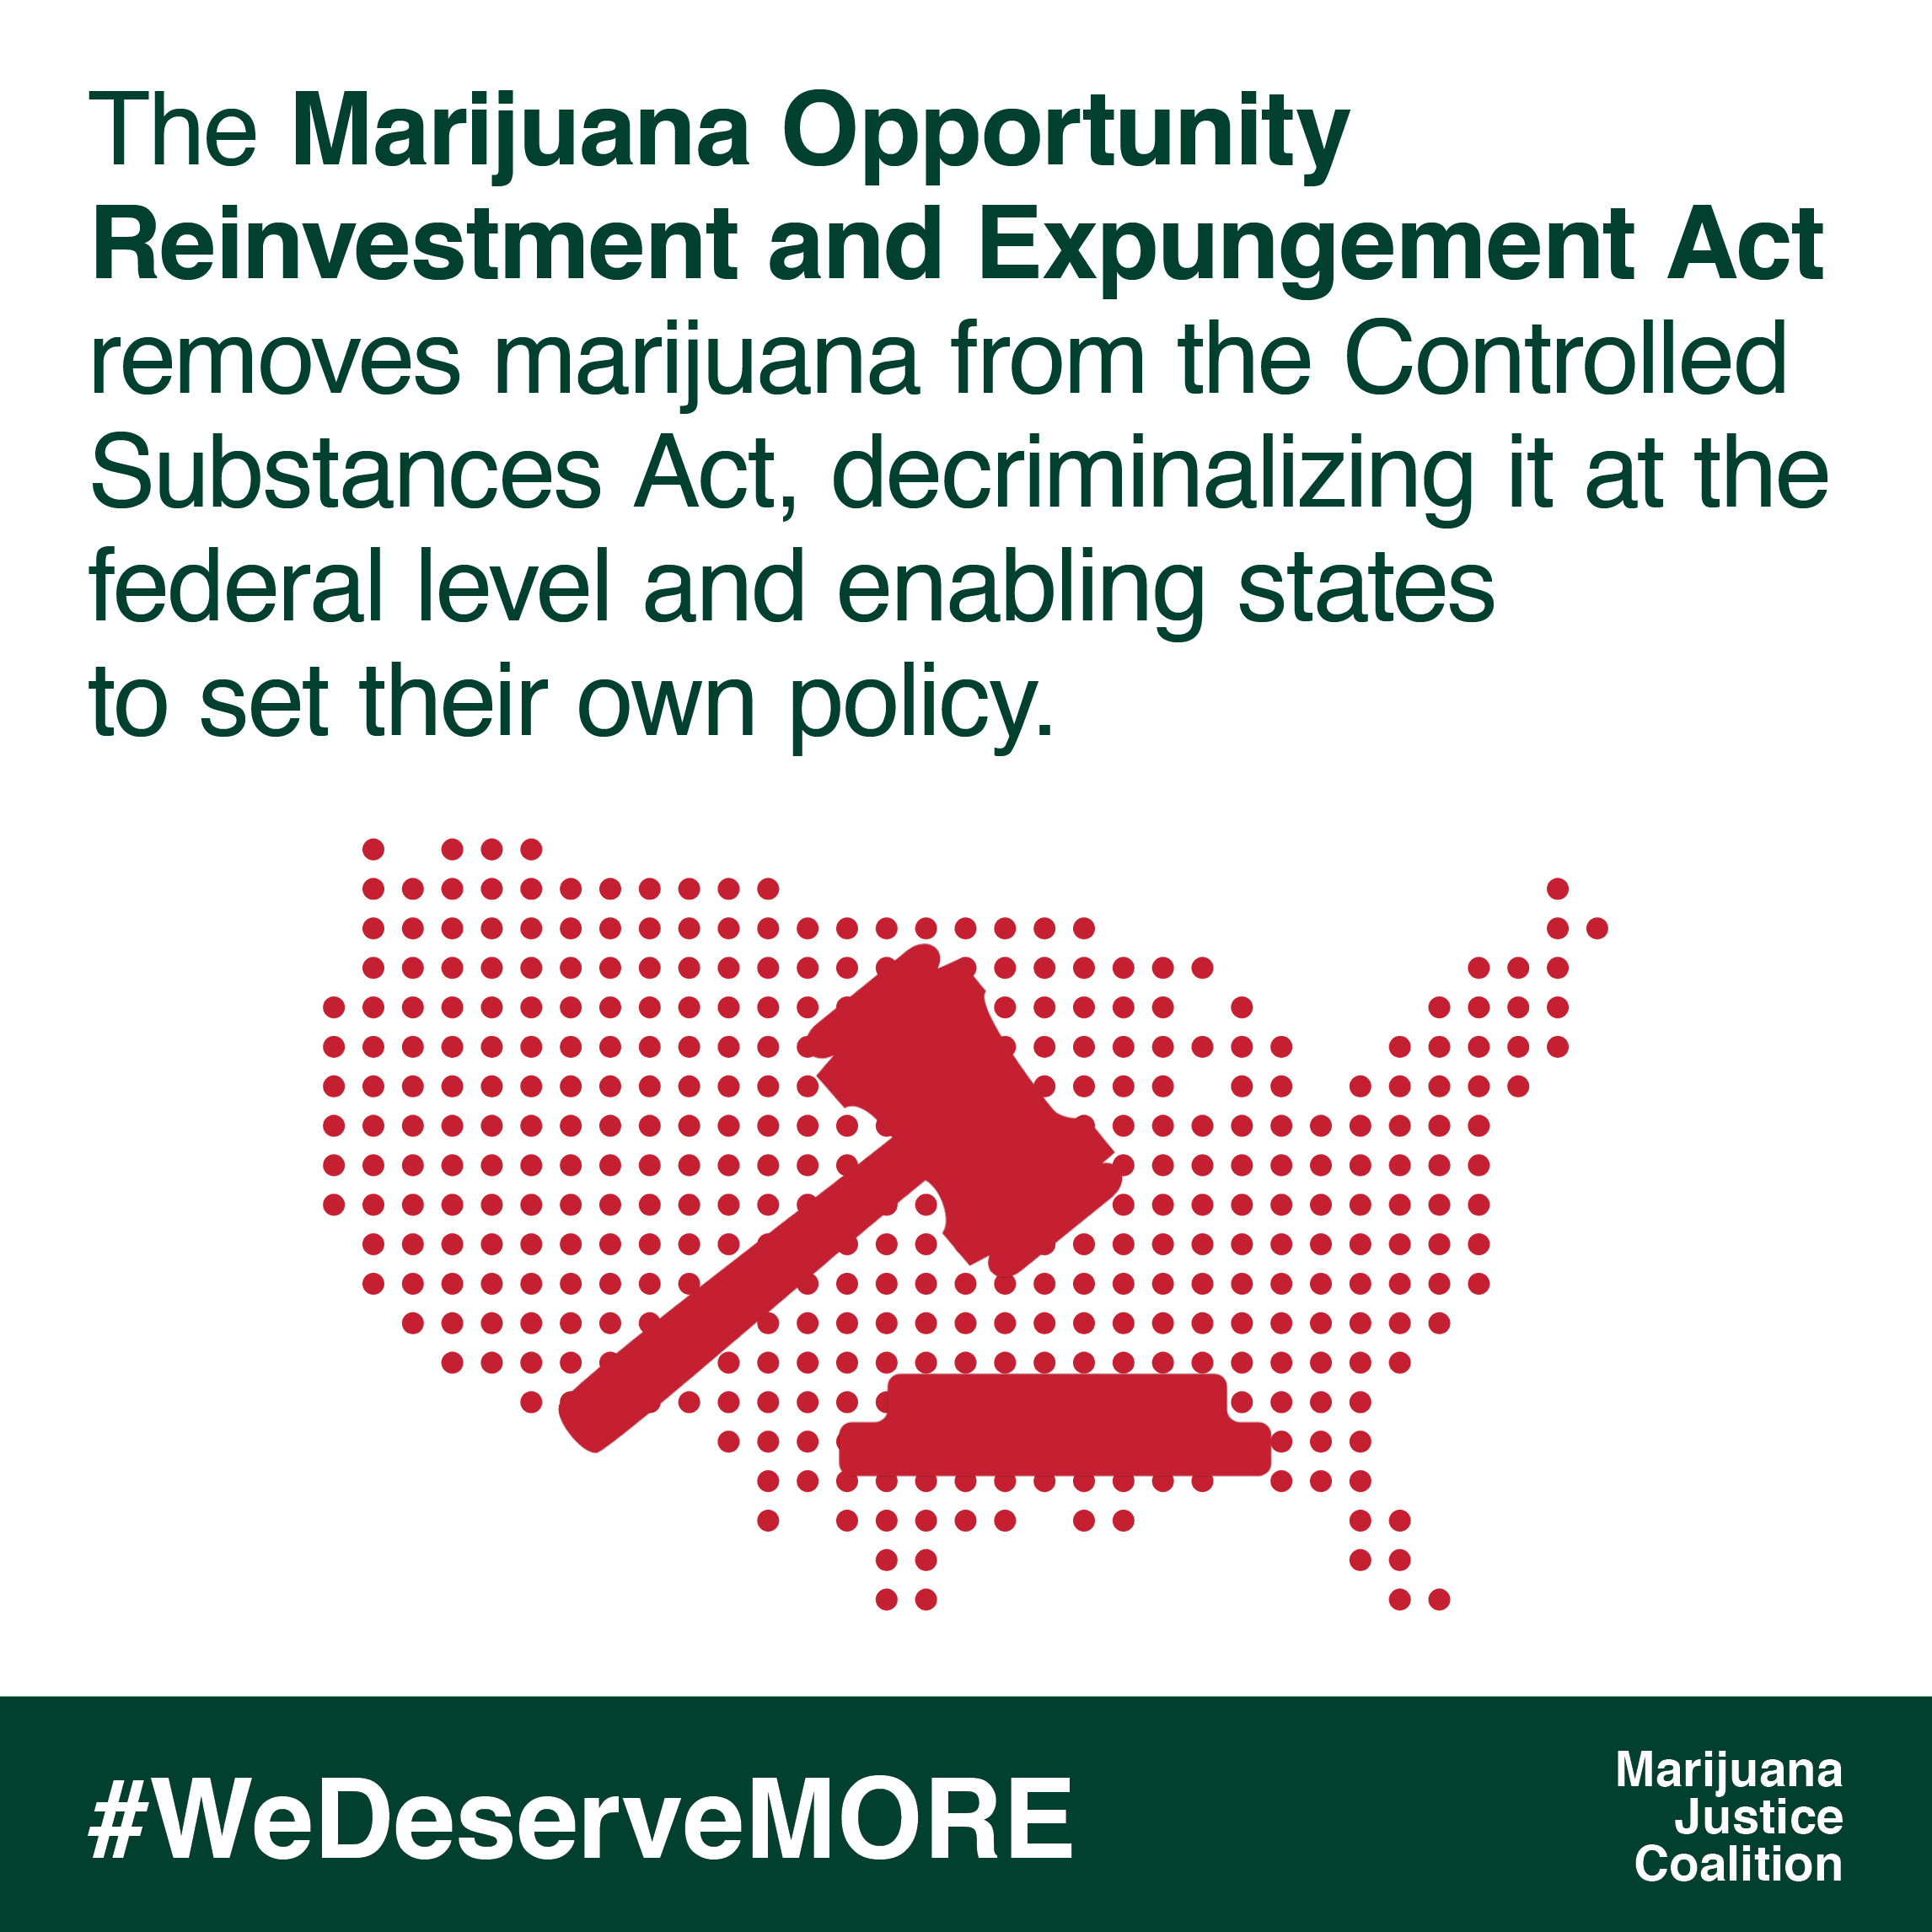 Marijuana Opportunity Reinvestment and Expungement Act